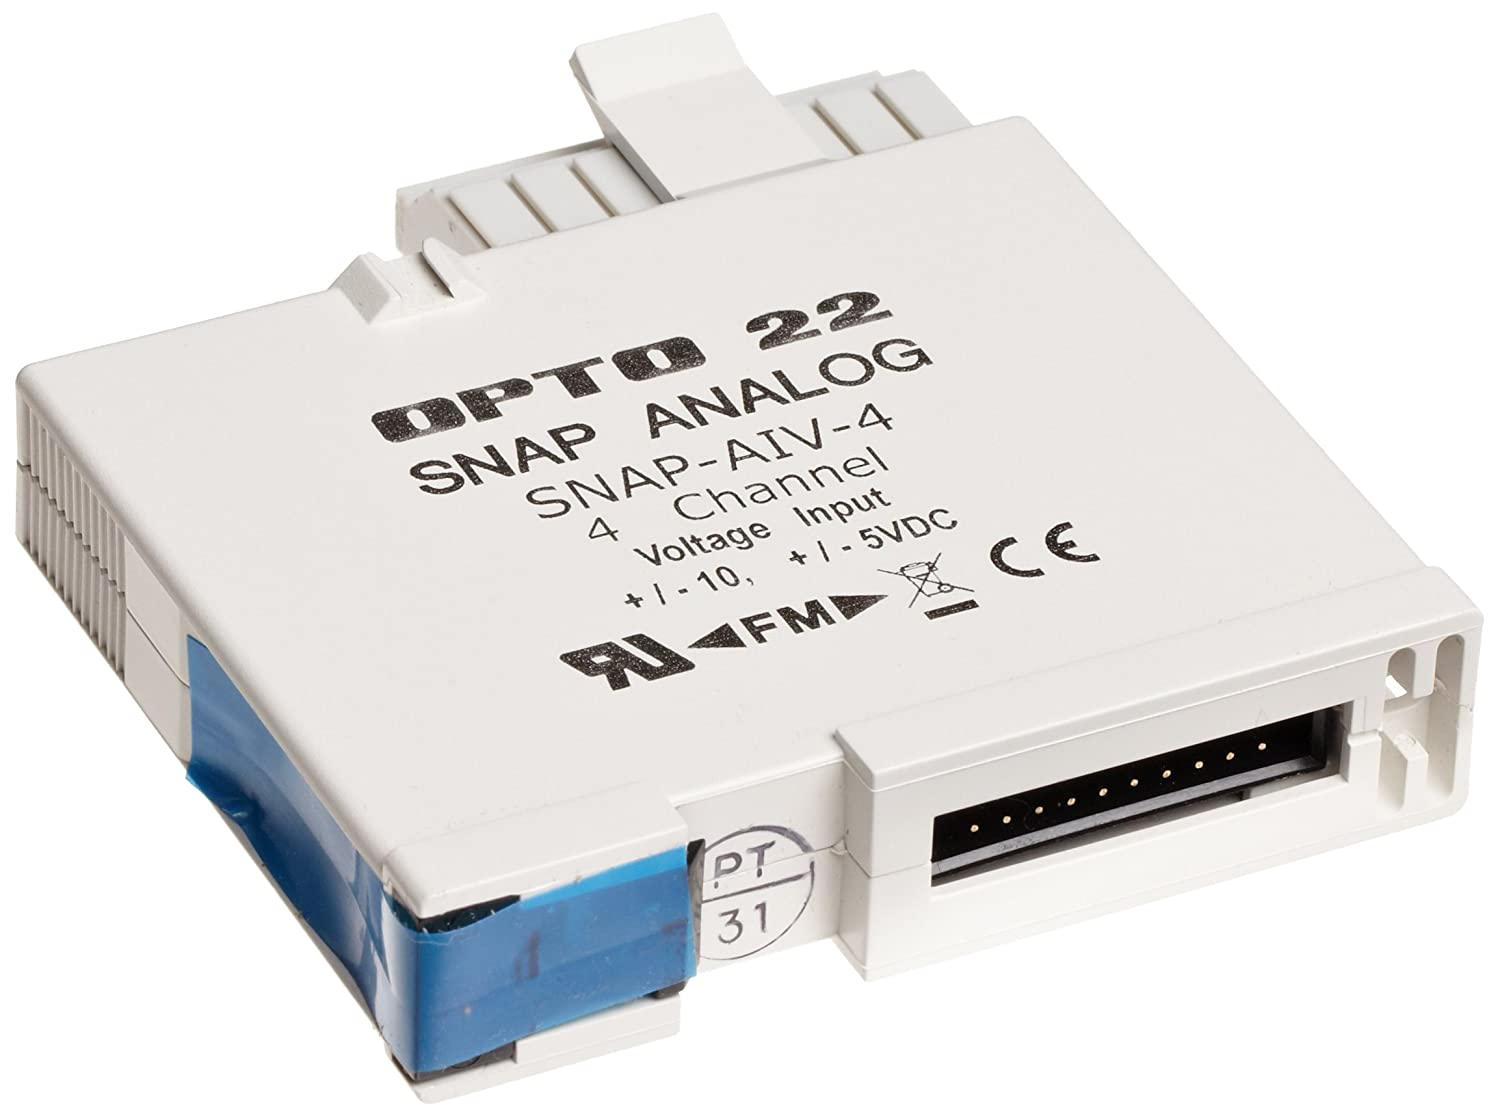 4-Channel SNAP Analog Input Module -10 VDC to +10 VDC or -5 to +5 VDC Input Opto 22 SNAP-AIV-4